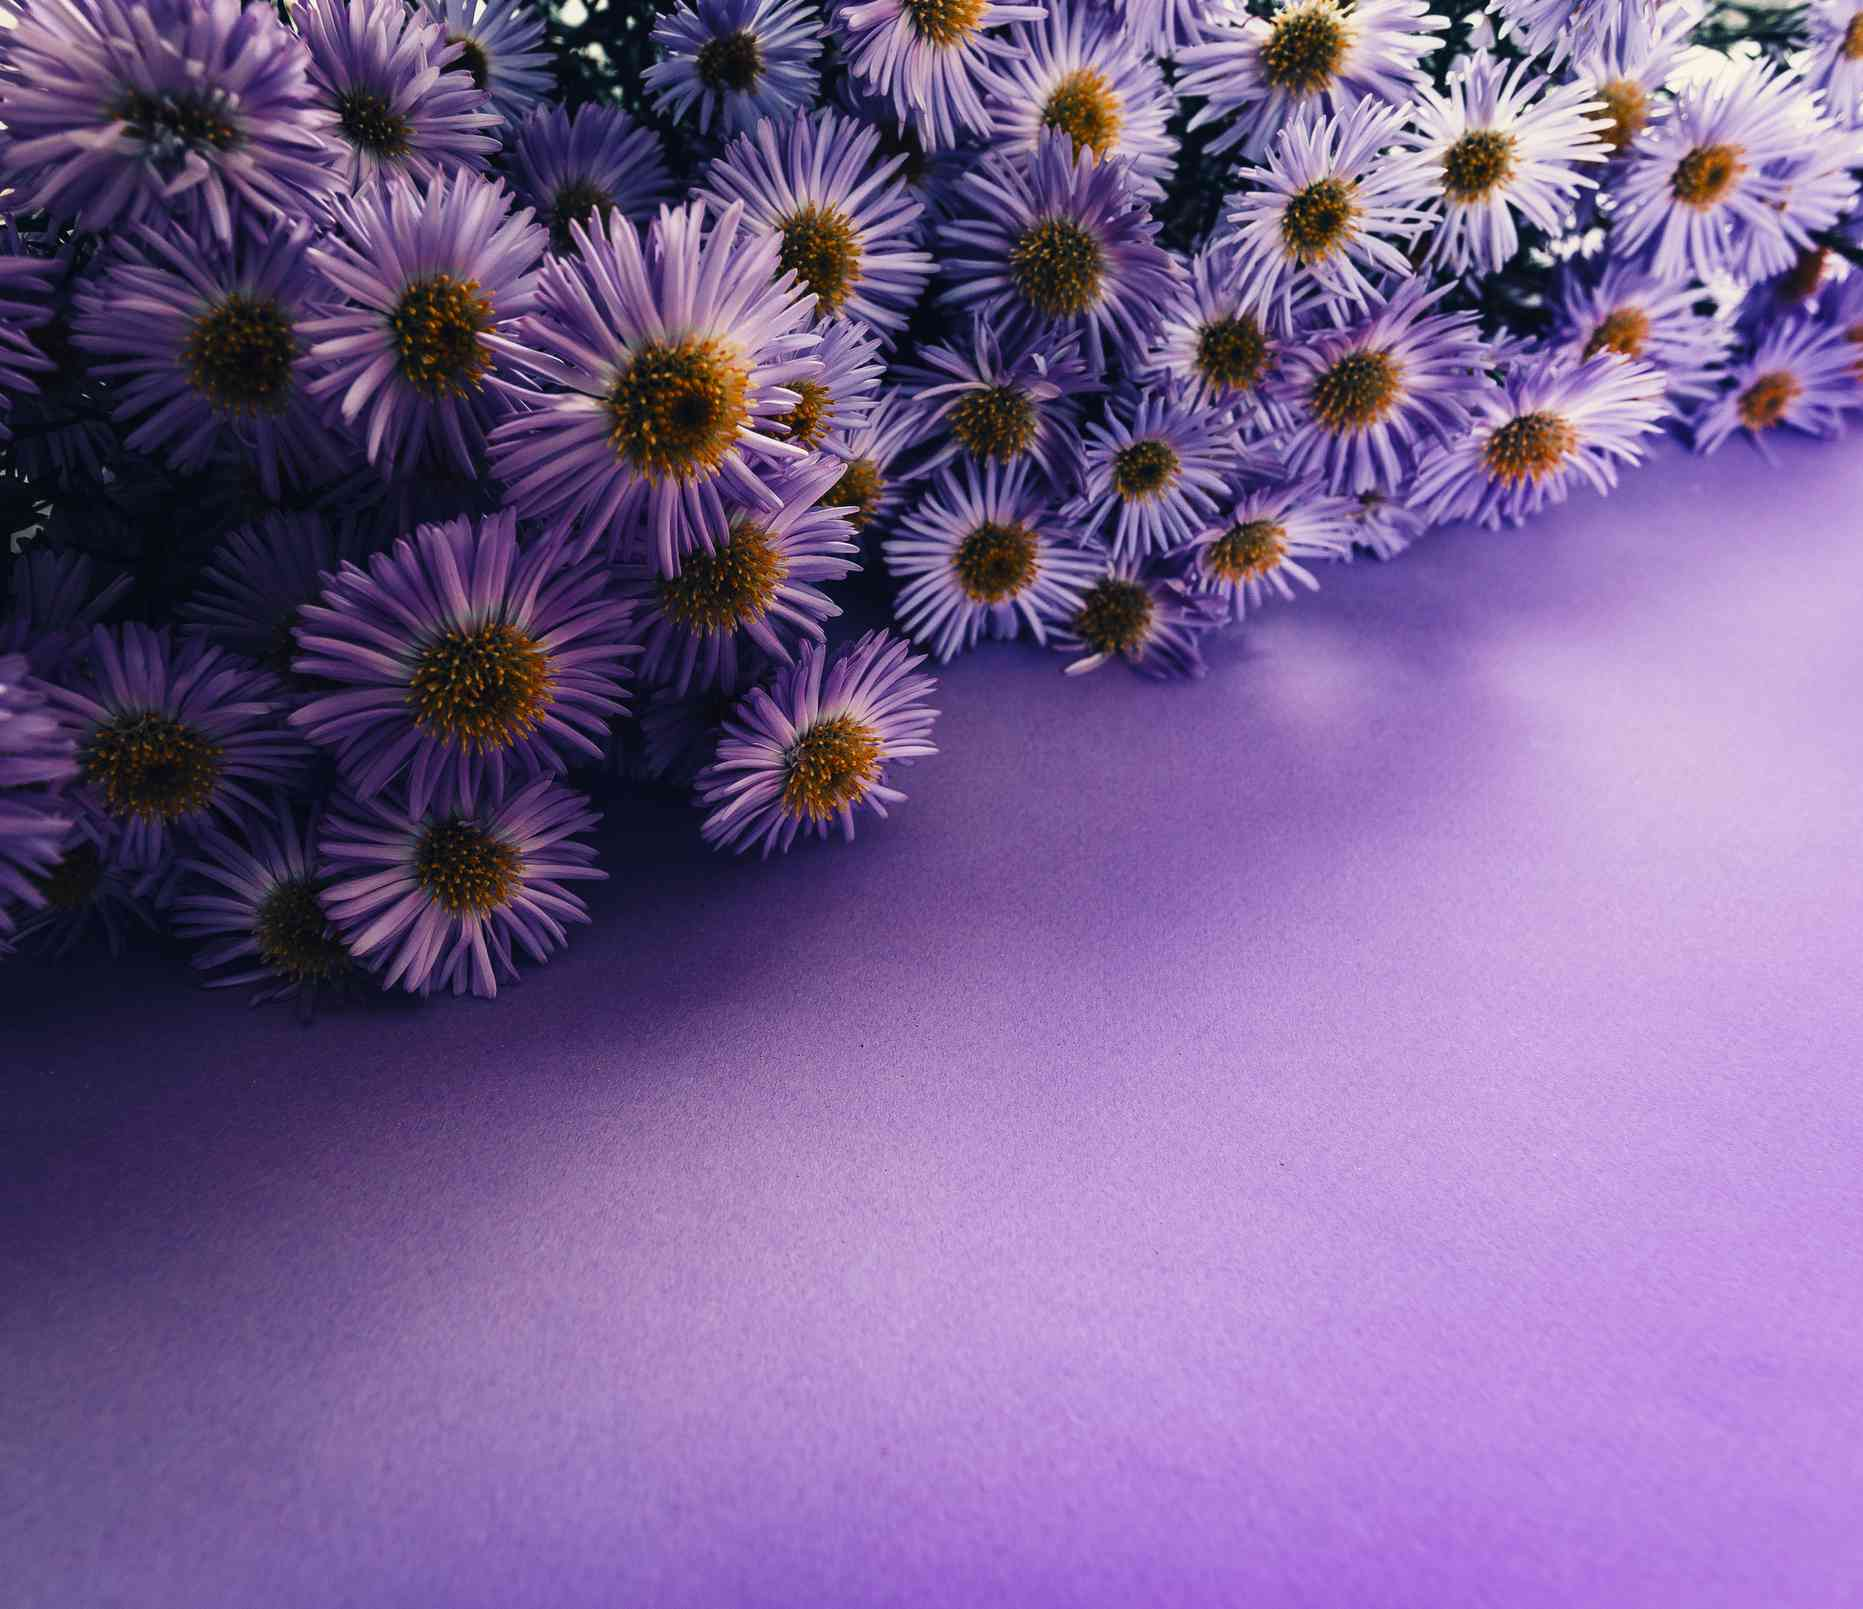 Violet aster flowers on white wood background with copy space